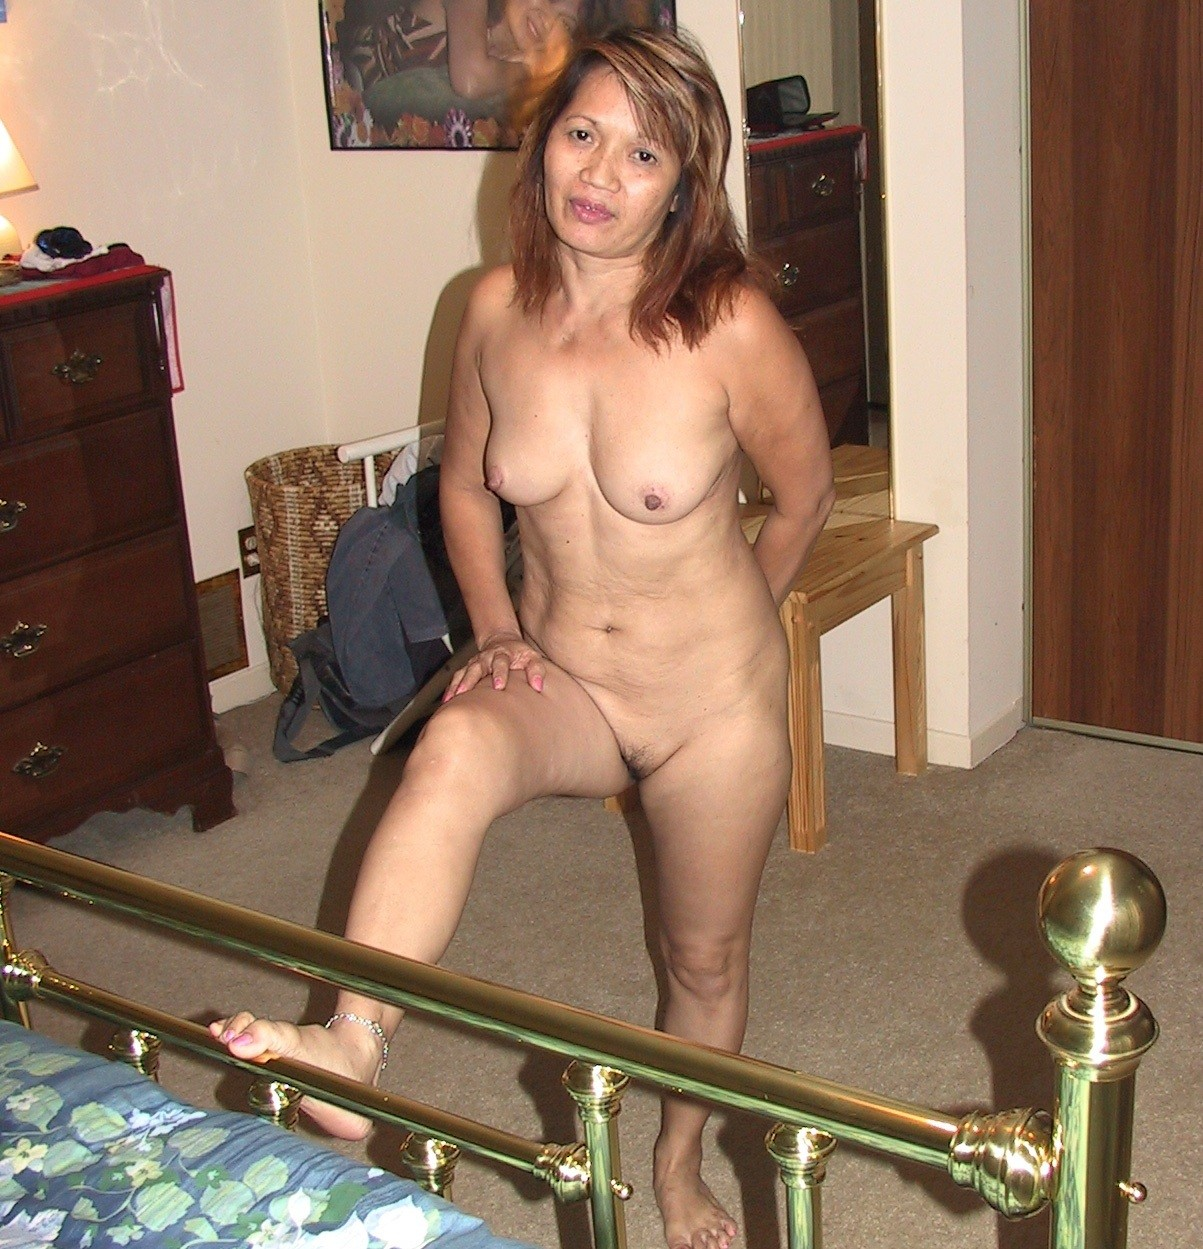 Muscular nude women with penis